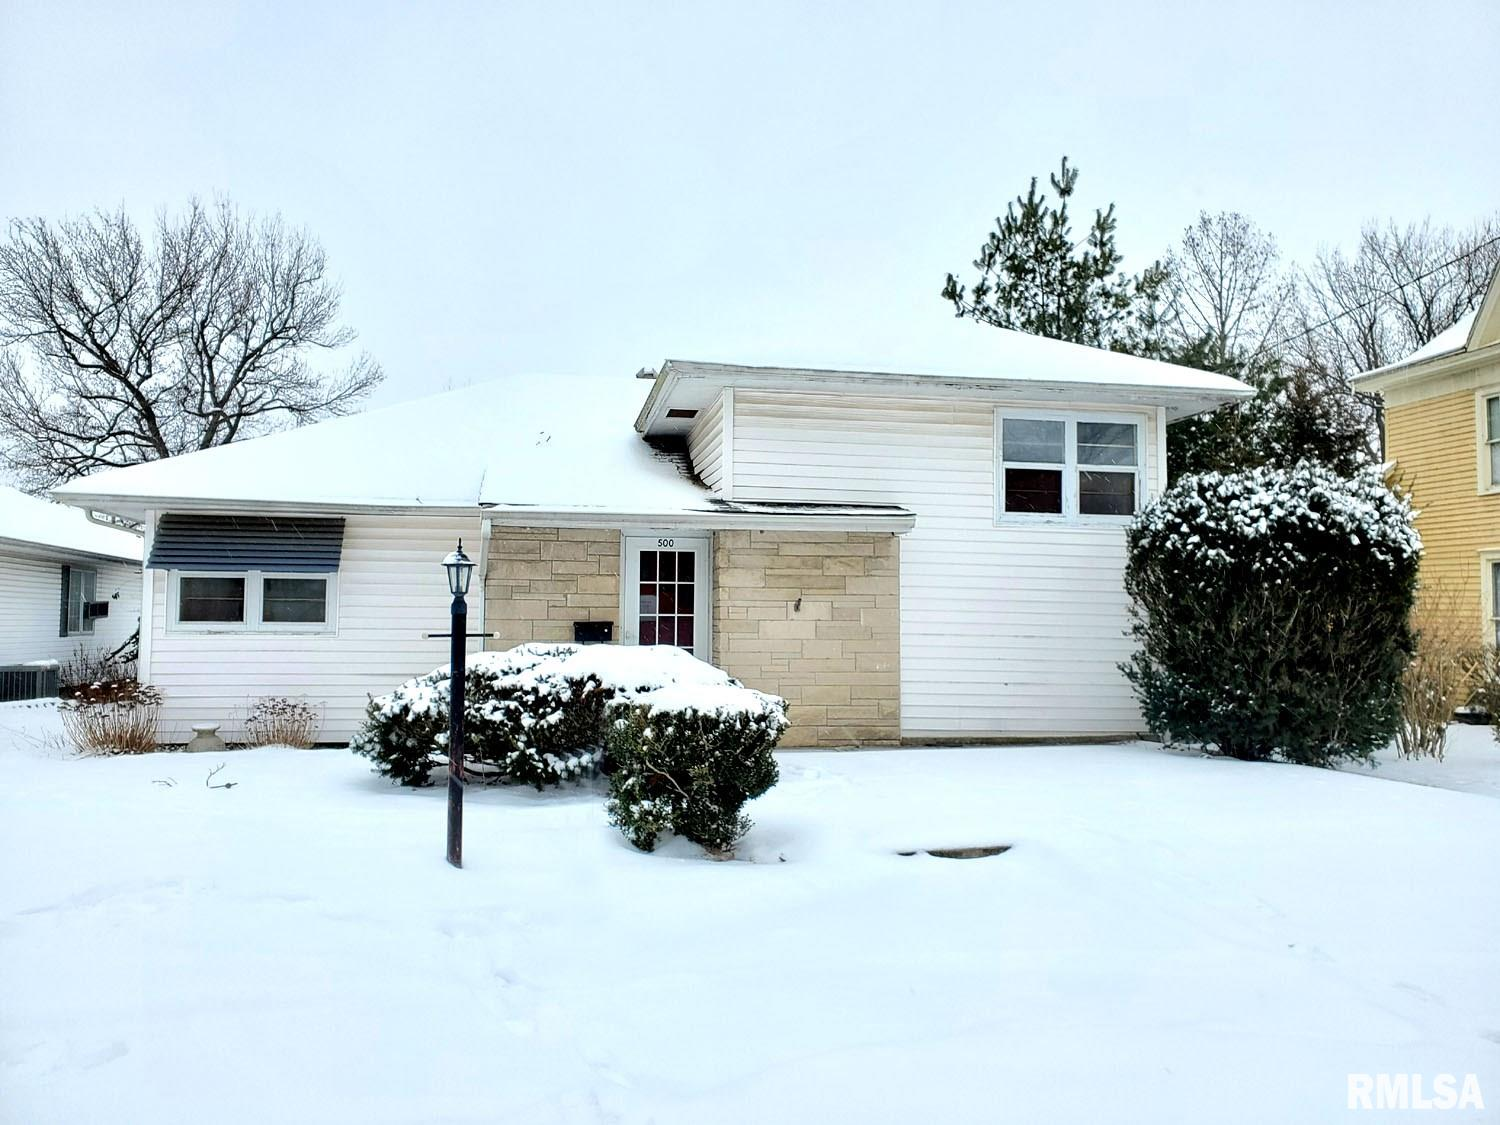 500 SE 4TH Property Photo - Fairfield, IL real estate listing